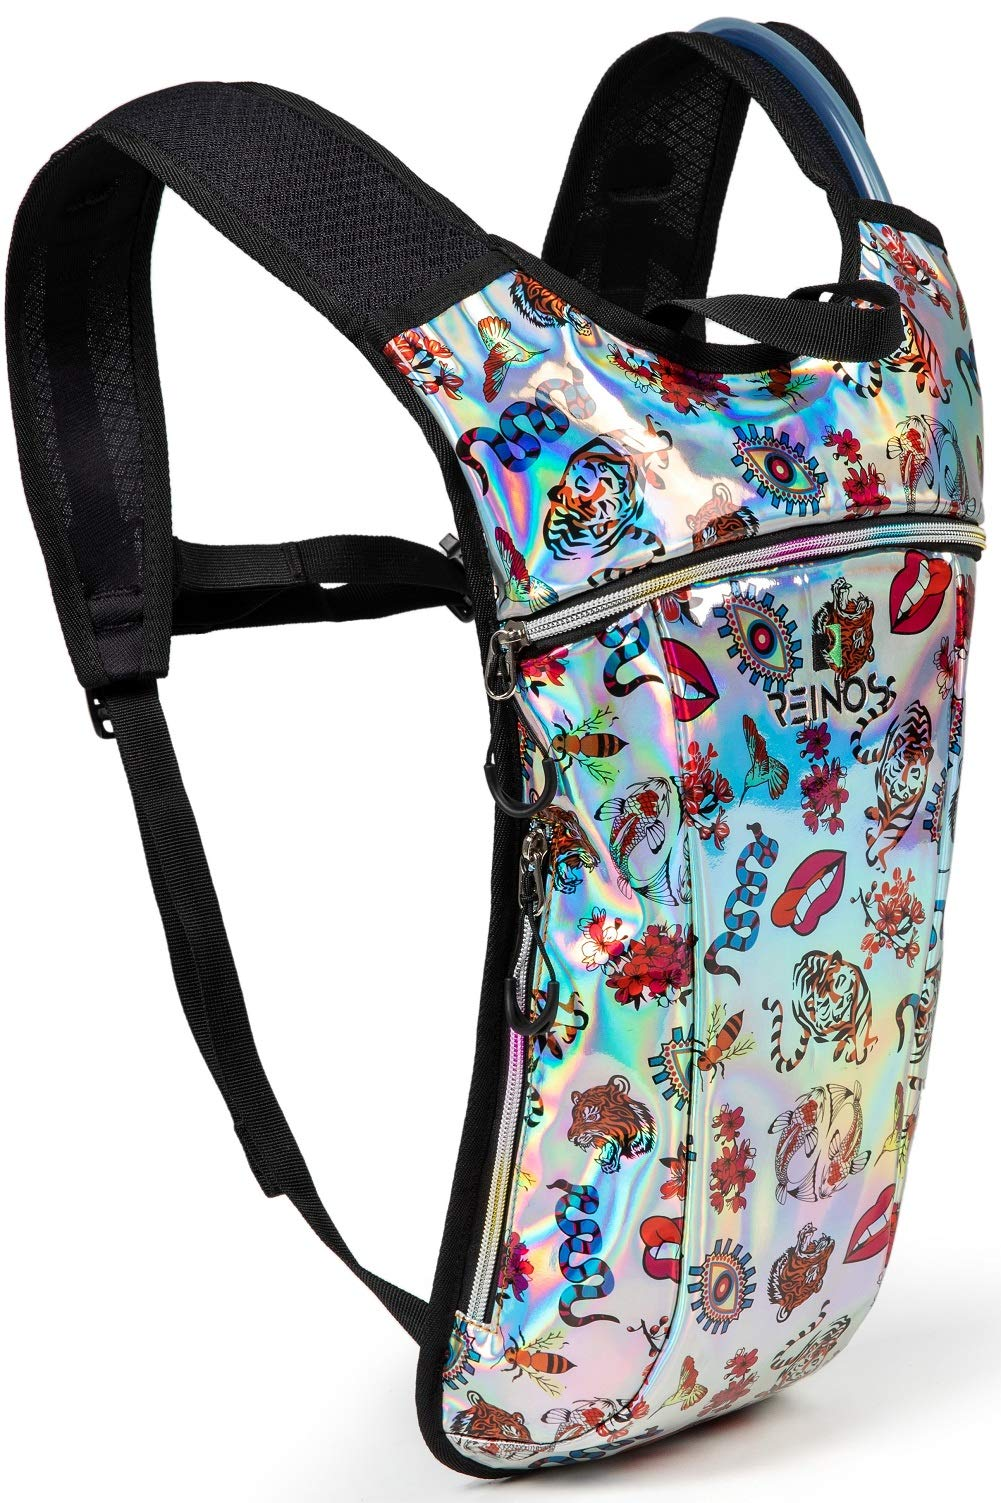 REINOS Hydration Backpack - Light Water Pack - 2L Water Bladder Included for Running, Hiking, Biking, Festivals, Raves (Tiger) by REINOS